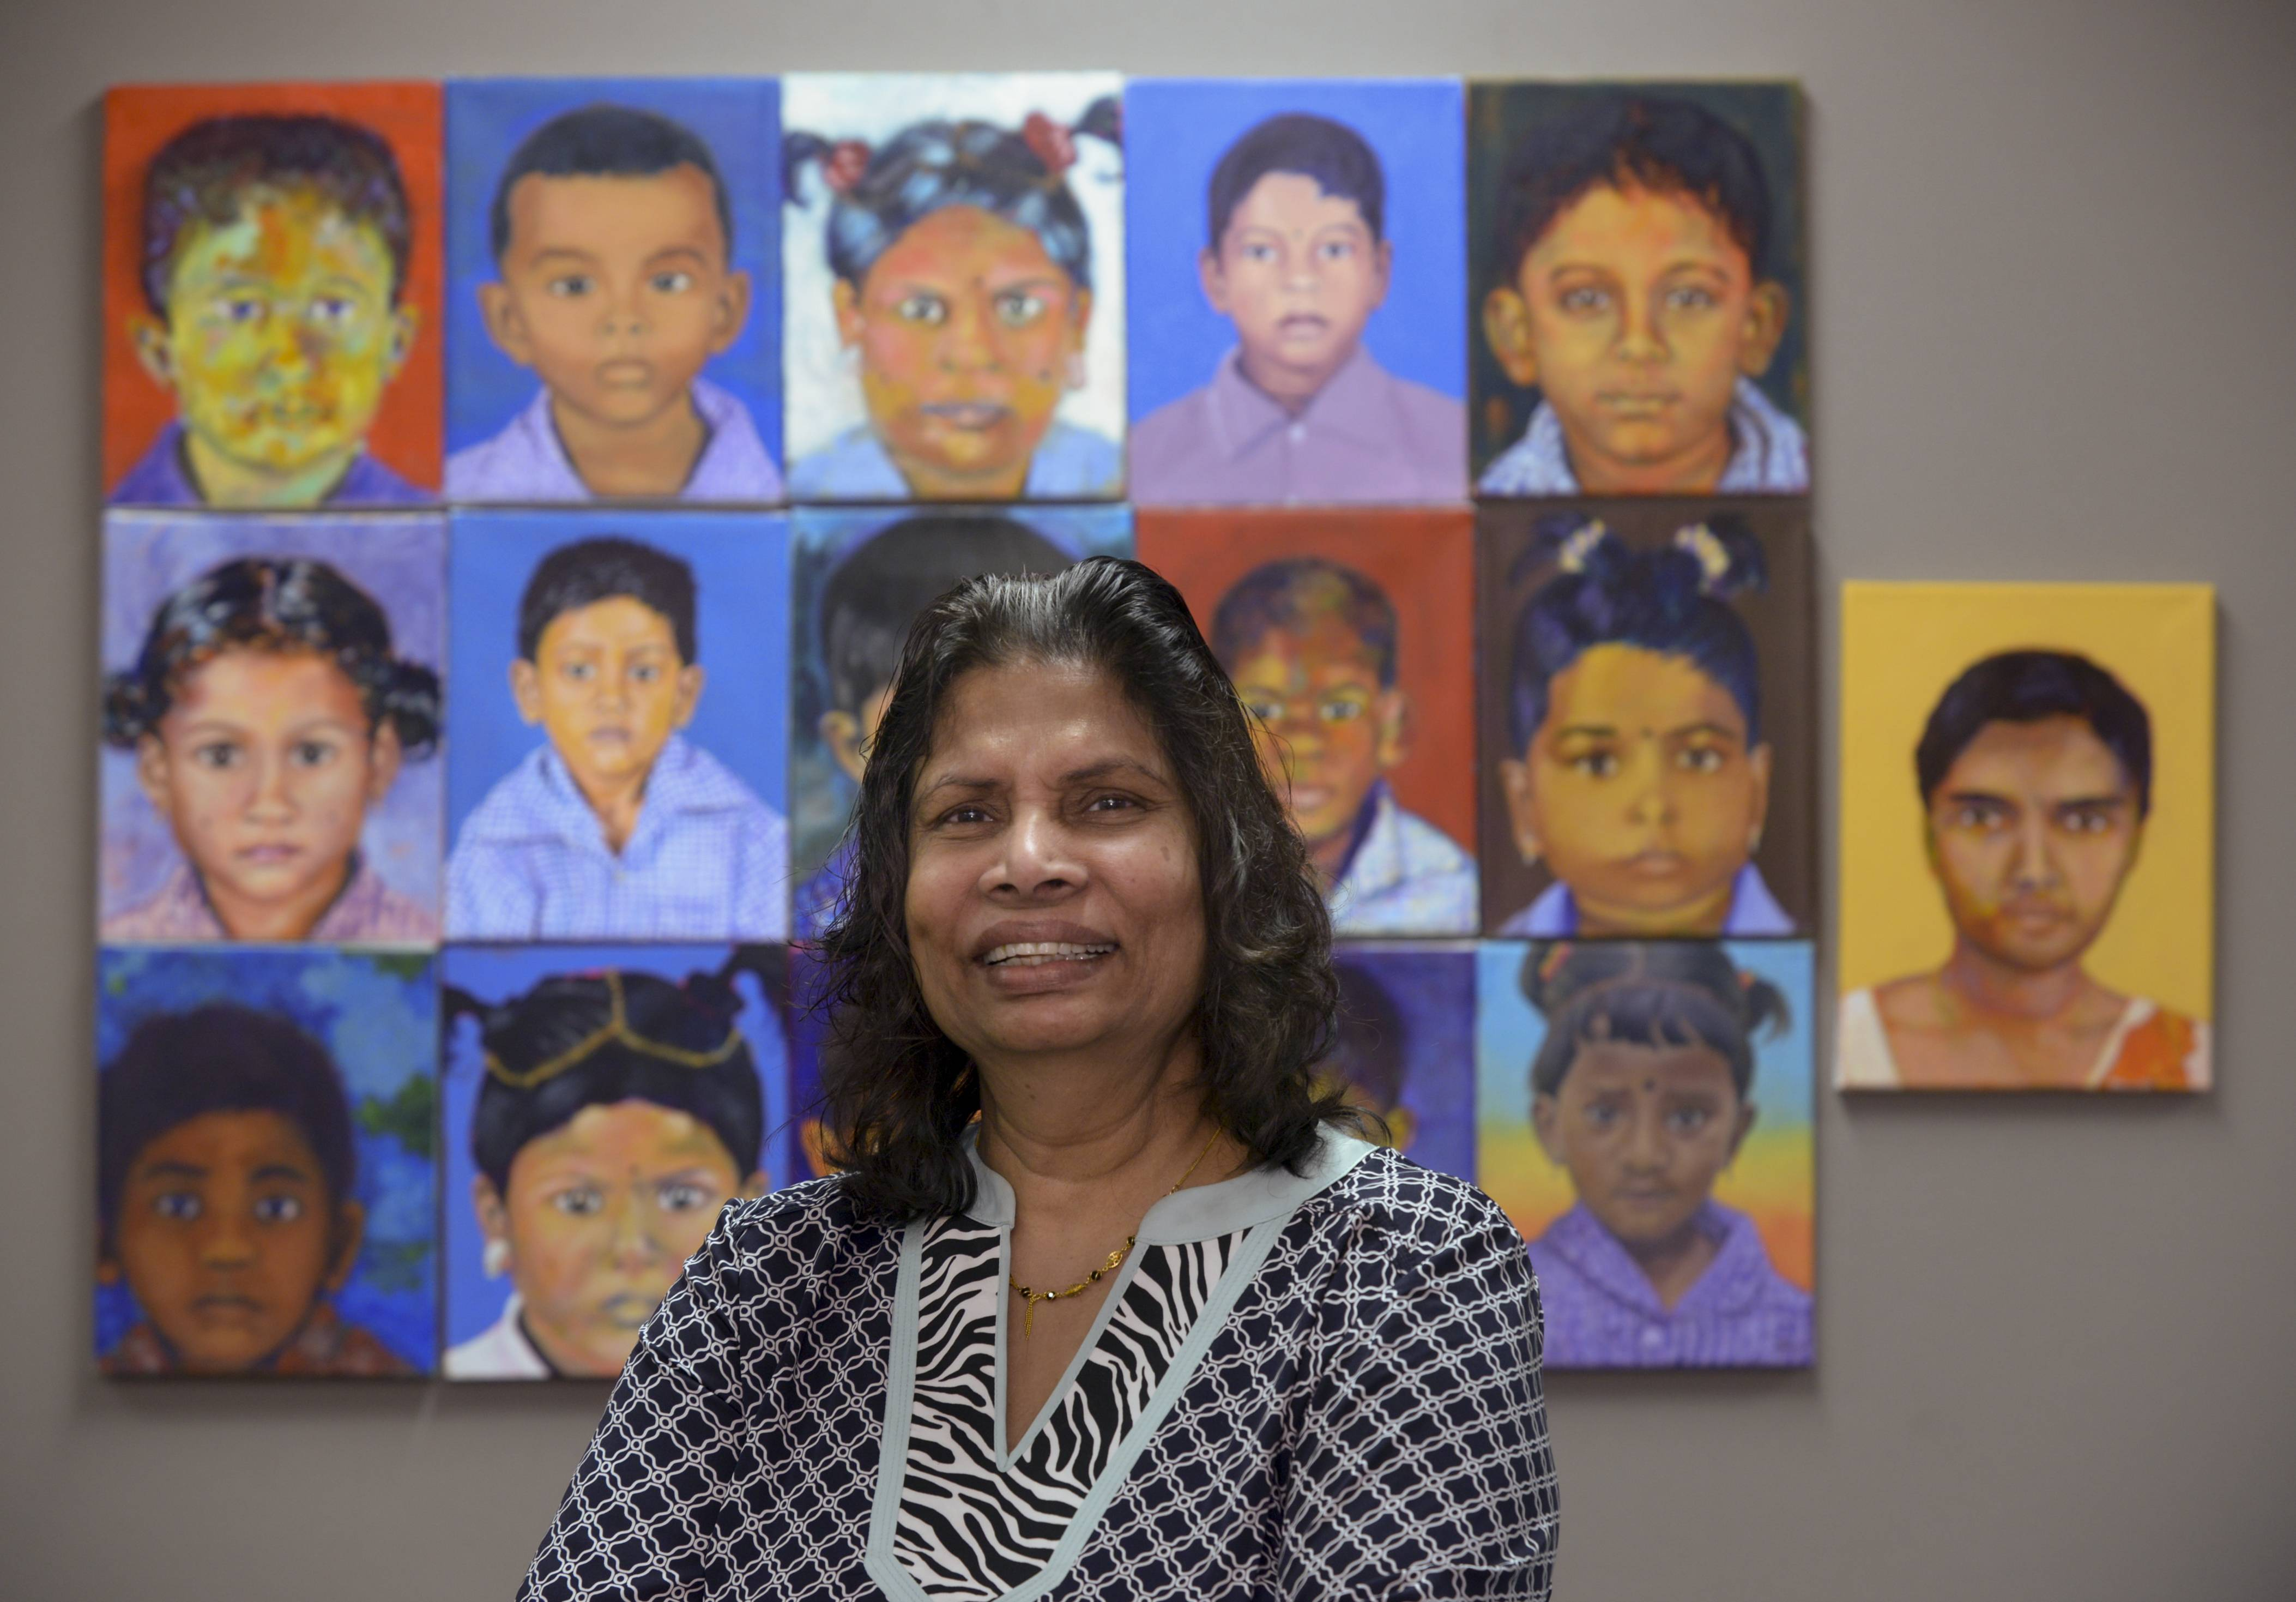 COD art student Evangeline Alagaratnam visited her native Sri Lanka two years ago and found children struggling to go school in that war-torn country. She took photos of the children that inspired art professor Jennifer Hereth to have her art students paint portraits of the children.